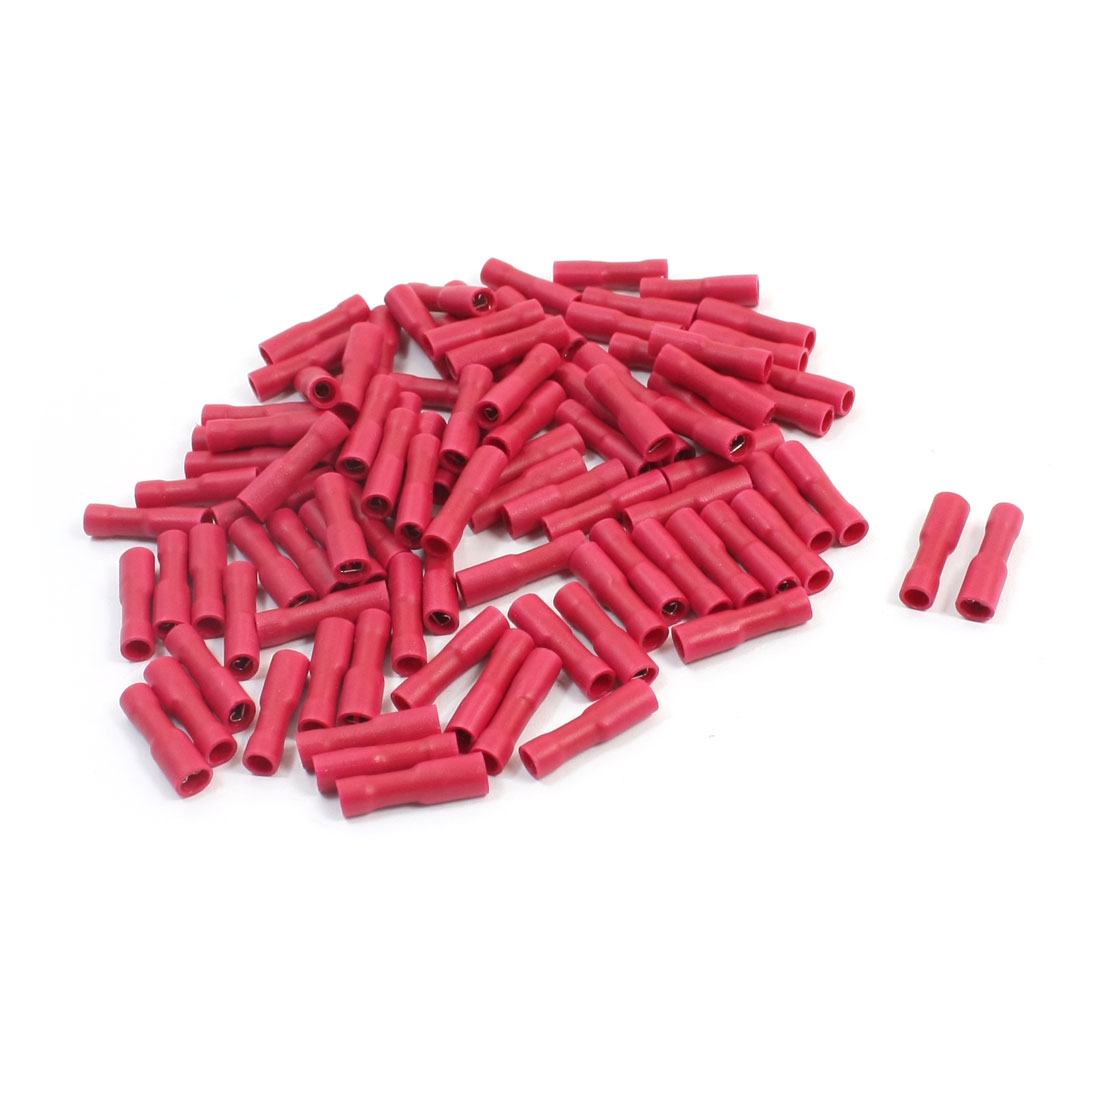 100pcs FDFD1-187 22-16AWG Wire Red Plastic Coated Spade Crimp Connector Insulated Terminal